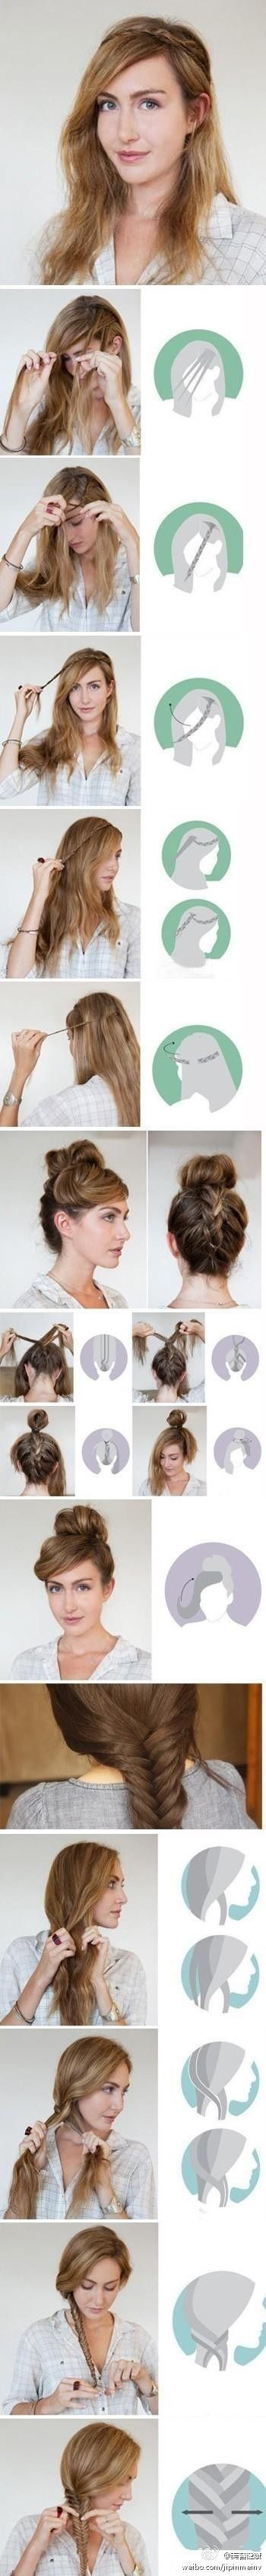 haircuts: Easy Hairstyles, Braids Hairstyles, Fun Hairstyles, Long Hairstyles, Hairstyle Tutorials, Hairstyles Tutorials, Braided Hairstyles, Hairstyles Diy, Cute Hairstyles